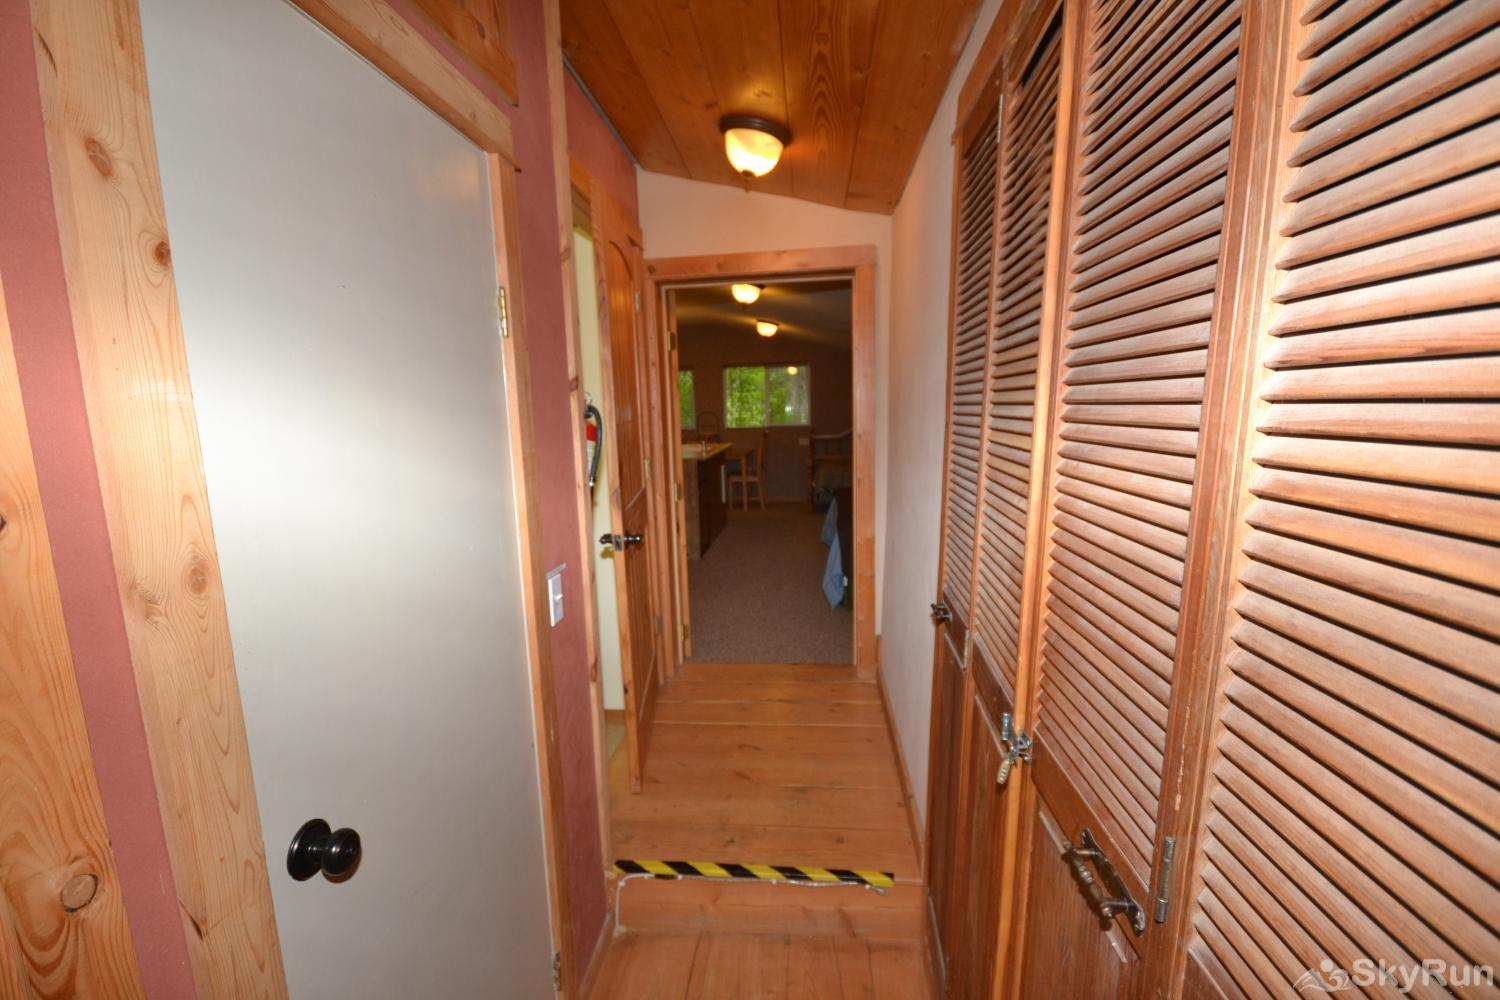 The Studio at Stillwater Mountain Lodge Shared hallway (with step) leading up to studio